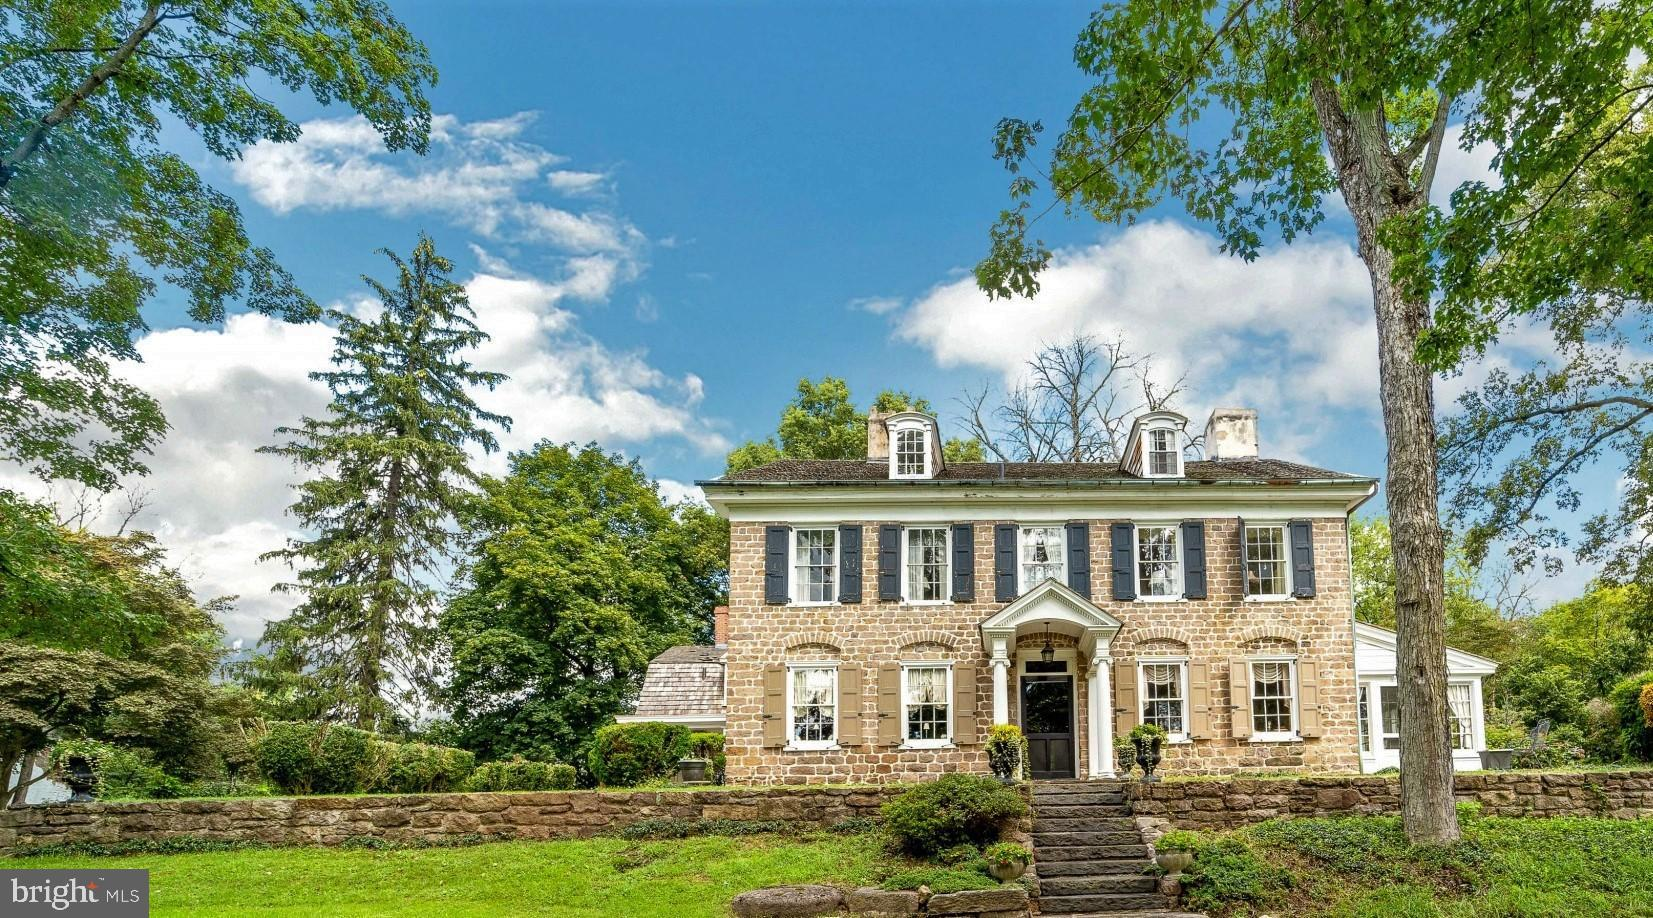 1000 Valley Forge Road, Phoenixville, PA 19460